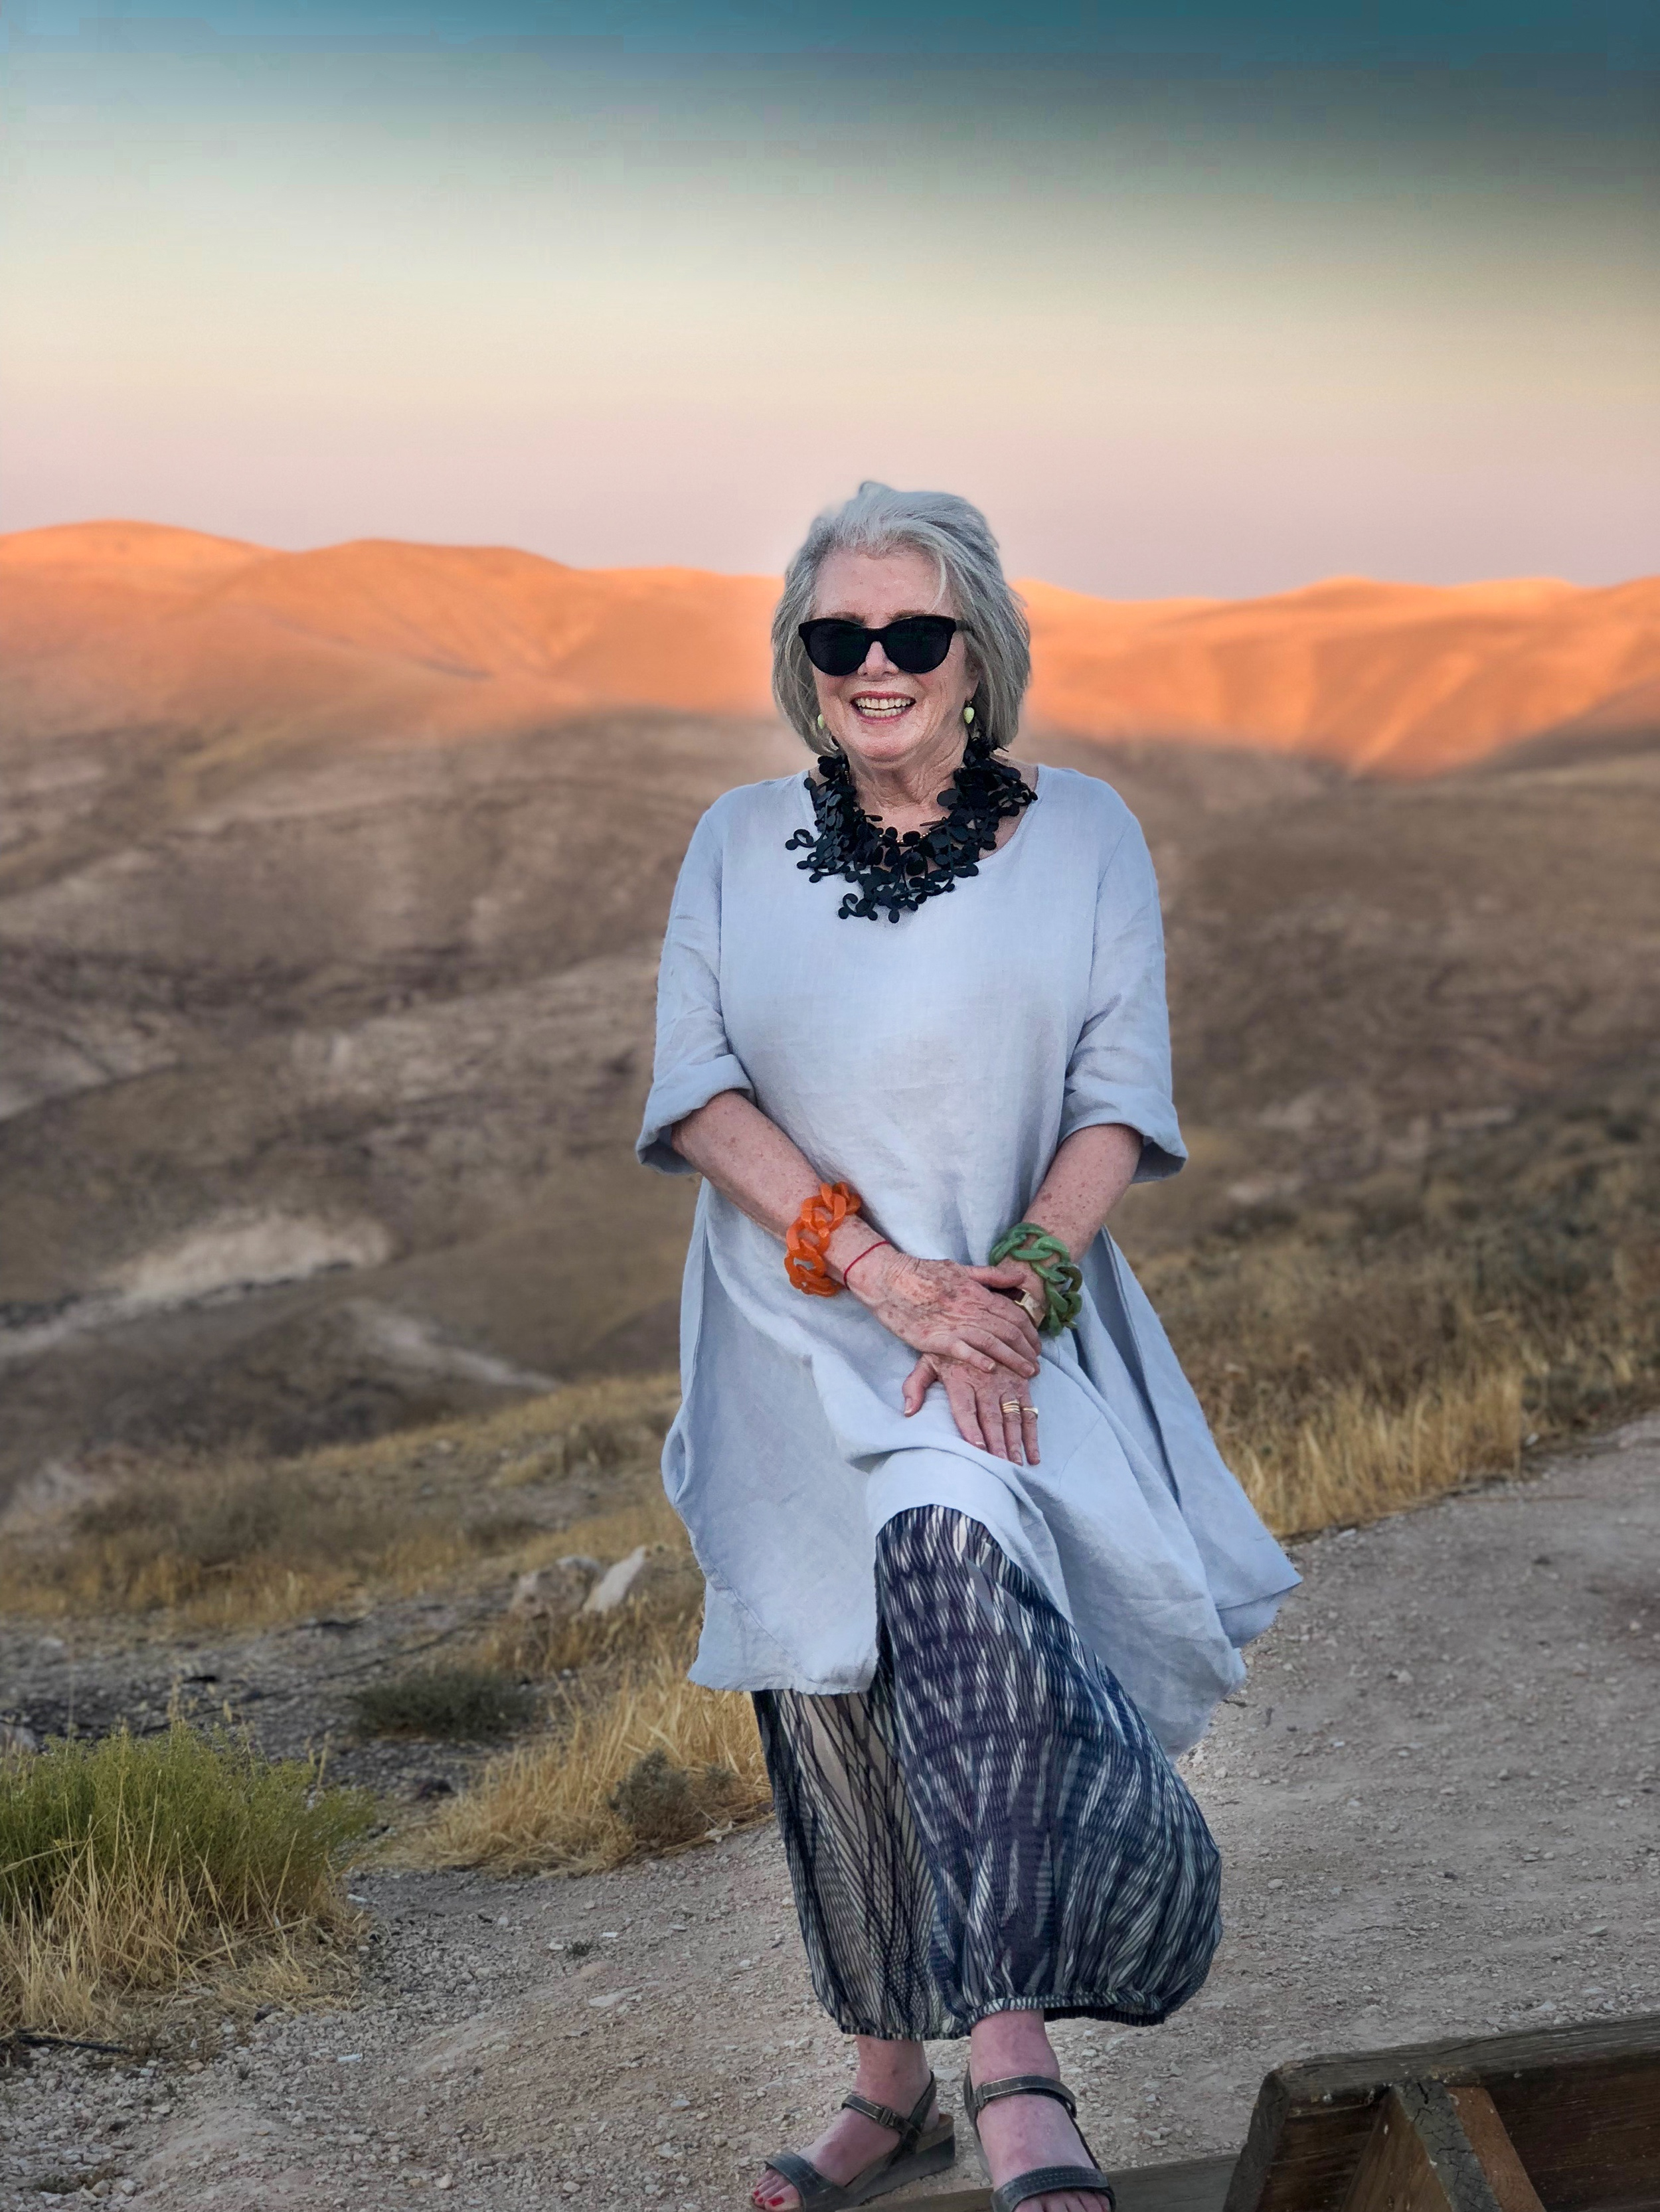 Here I am in Israel on the West Bank, Sandra of the Desert, wearing Warby Parker sun glasses, Ted Muehling earrings, ArtfulHome necklace, Bryn Walker outfit, Angela Caputi bracelets and Naot shoes.